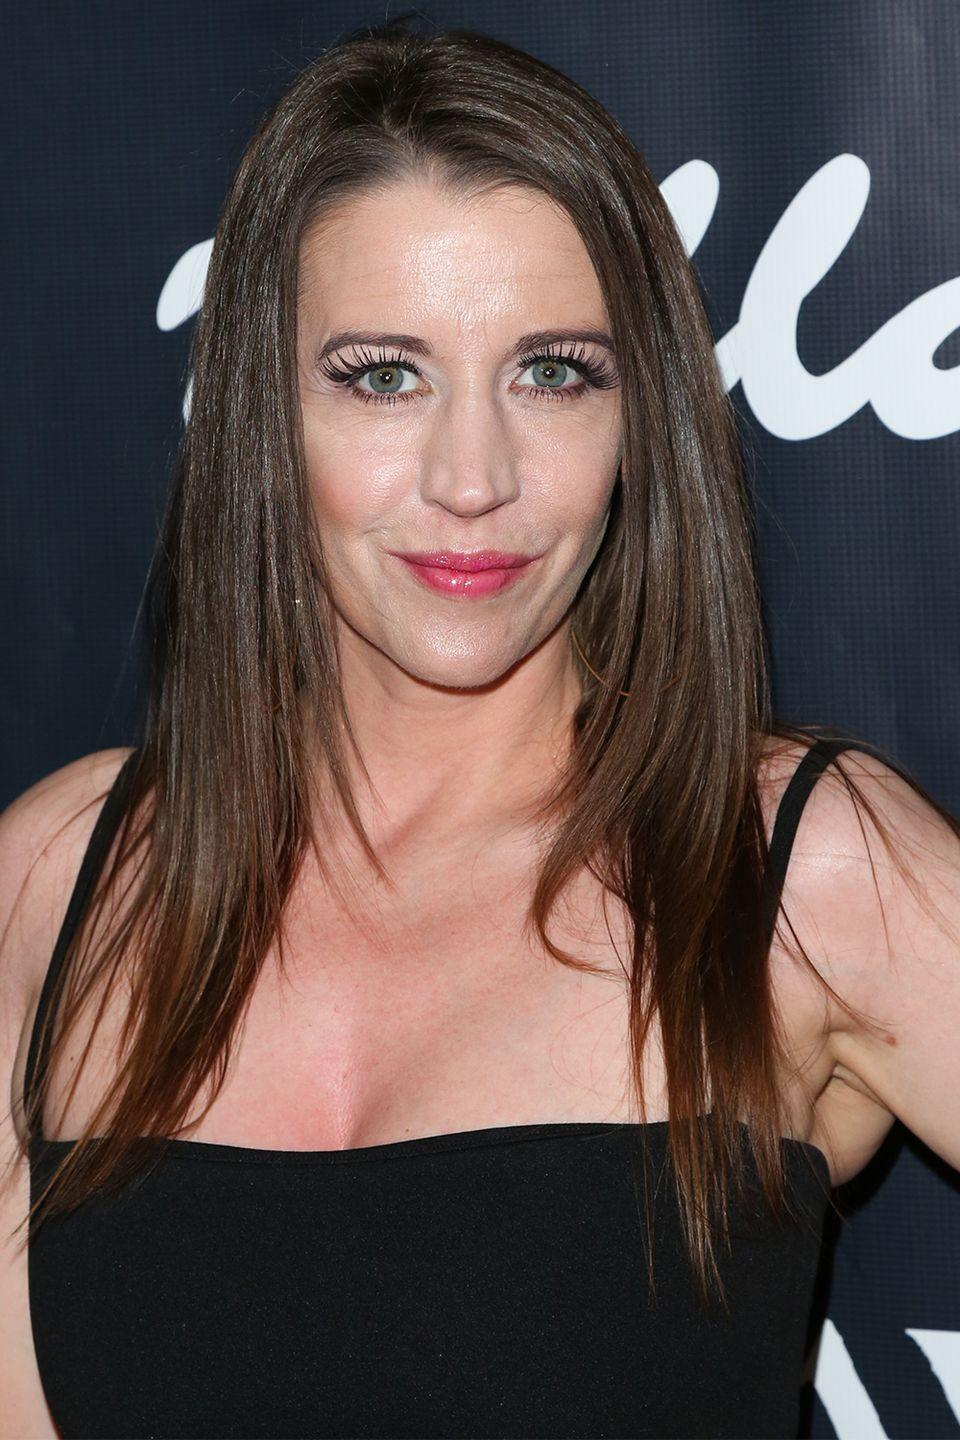 """<p>Justin Bieber's mom, Pattie Mallette has reportedly reclaimed her virginity since giving birth to the singer. """"When you lose your purity at such a young age, you start think that you are not worth it. And when you lose your self-confidence, your self-identity, and your purity, you kind of attract what you believe you were,"""" Pattie said in <a href=""""http://waitingtillmarriage.org/justin-biebers-mom-waiting-sex/"""" rel=""""nofollow noopener"""" target=""""_blank"""" data-ylk=""""slk:an interview"""" class=""""link rapid-noclick-resp"""">an interview</a>. </p><p>She's known for taking that vow very seriously. """"I wrote it down on a piece of paper, had somebody witness it. It means a lot, I made it this far, I'm not stopping now,"""" she said. </p>"""